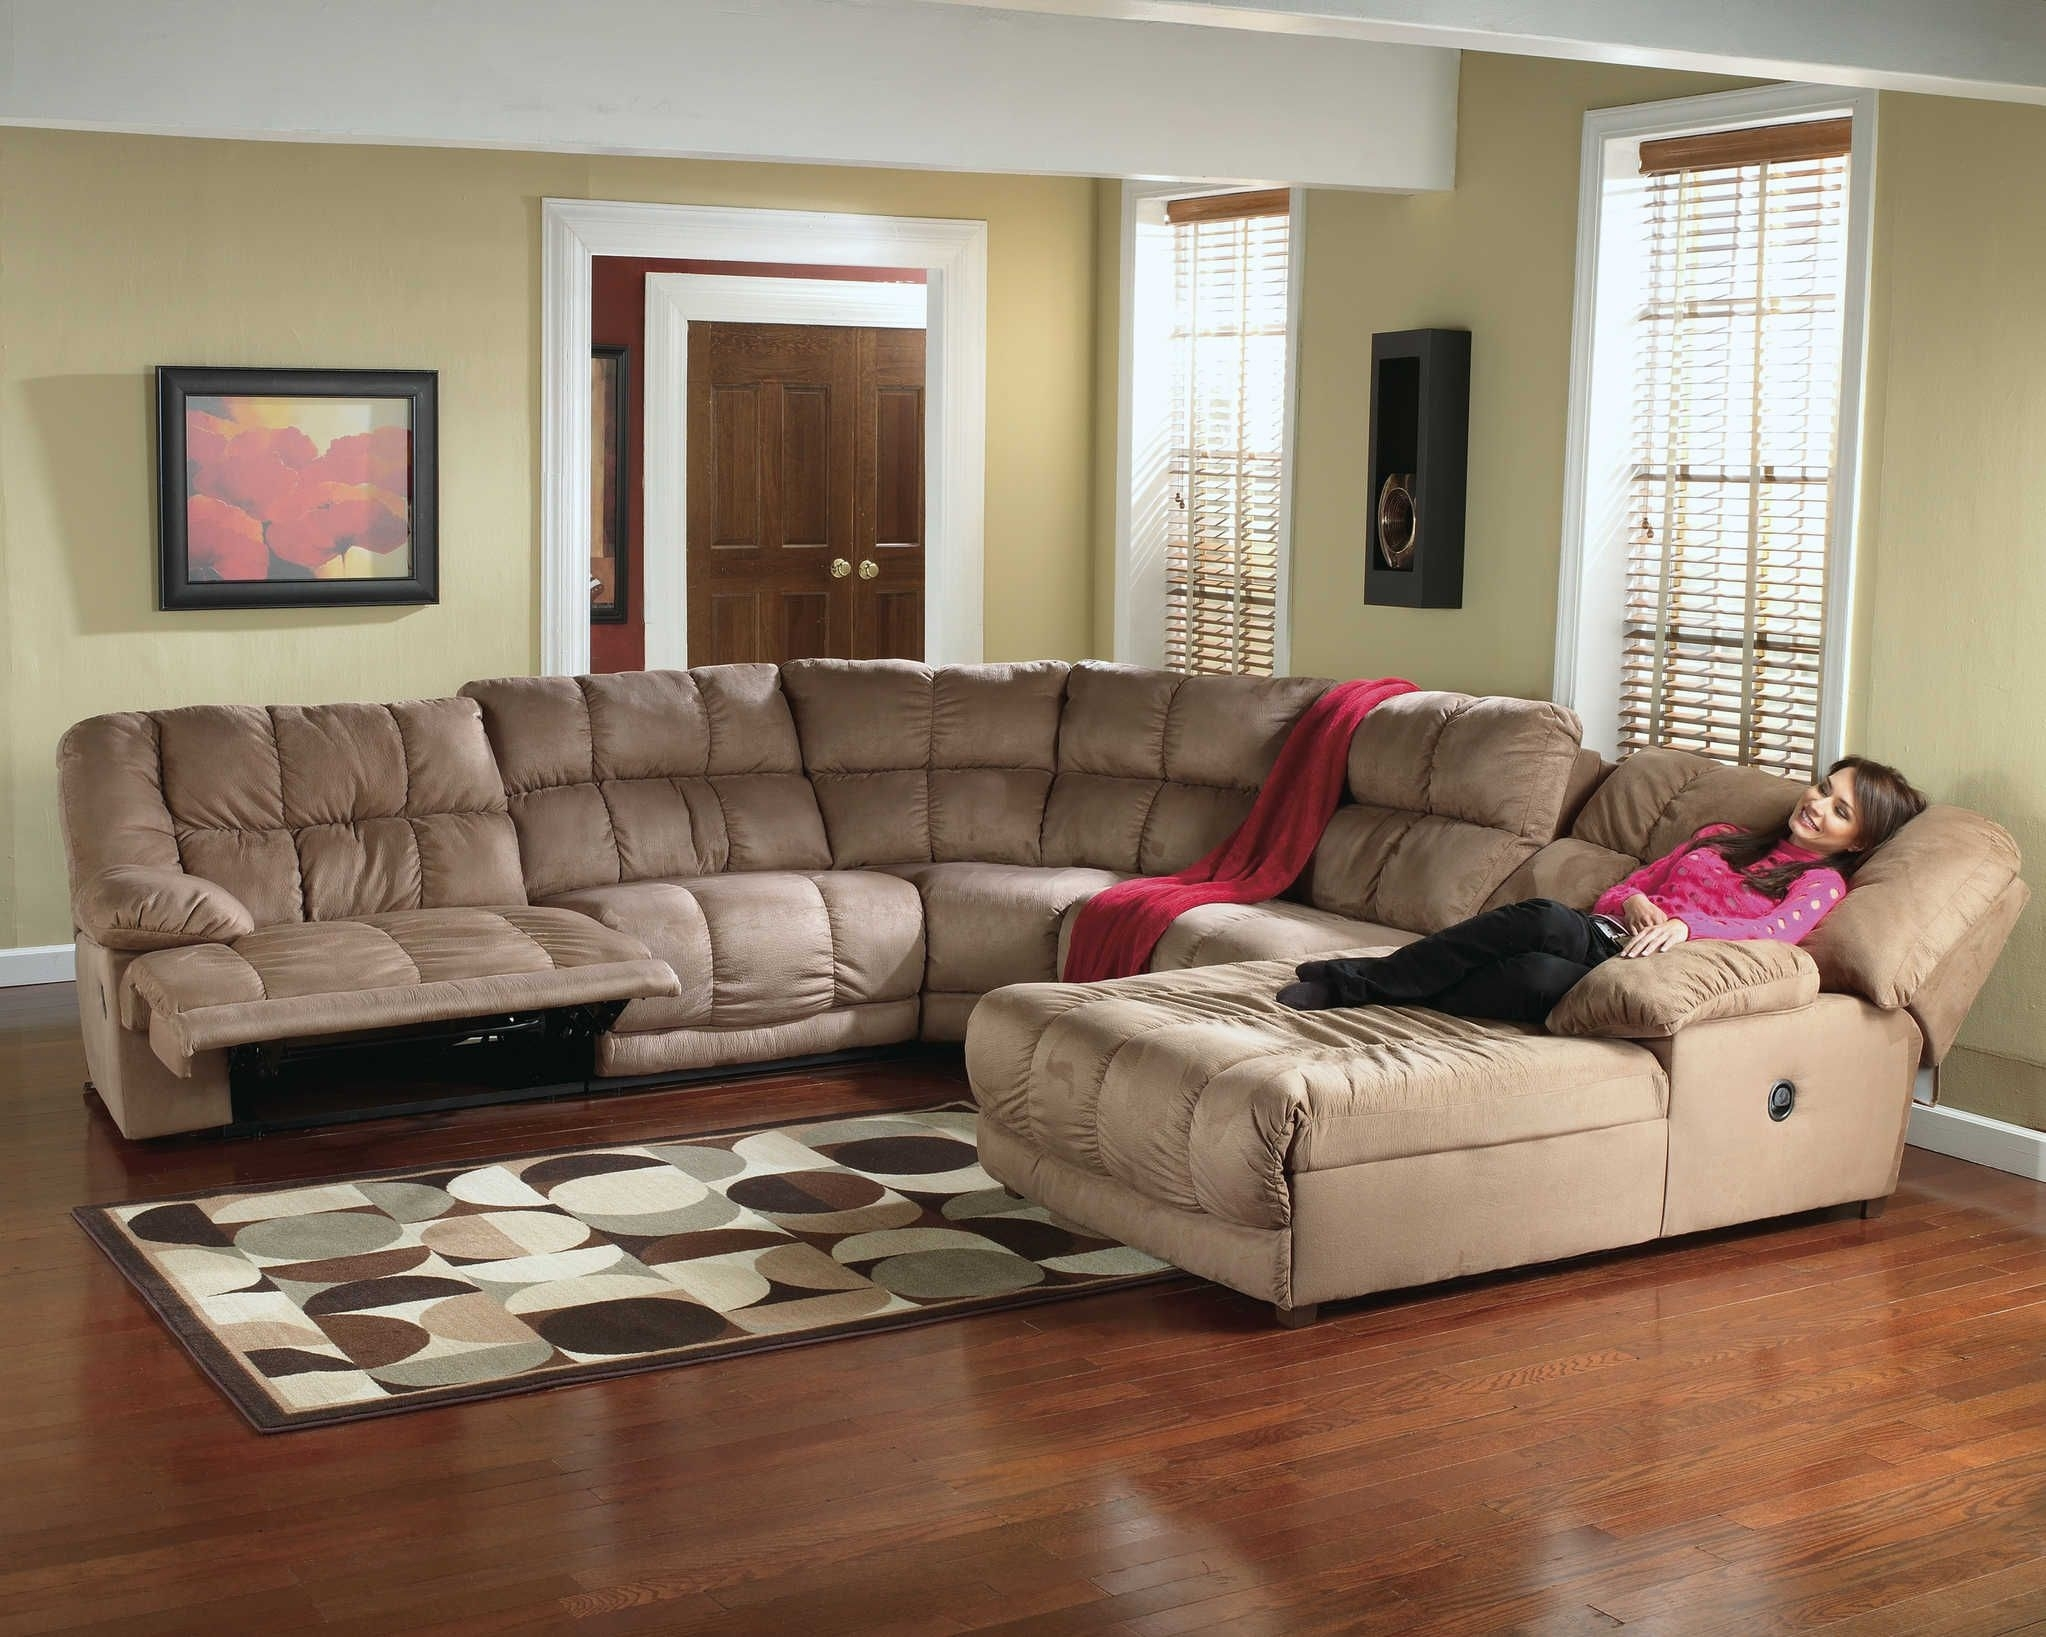 Microfiber Recliner Sectional | Sectional Sofa | Recliner Chaise 260 With Regard To Sectional Sofas With Recliners (View 9 of 15)